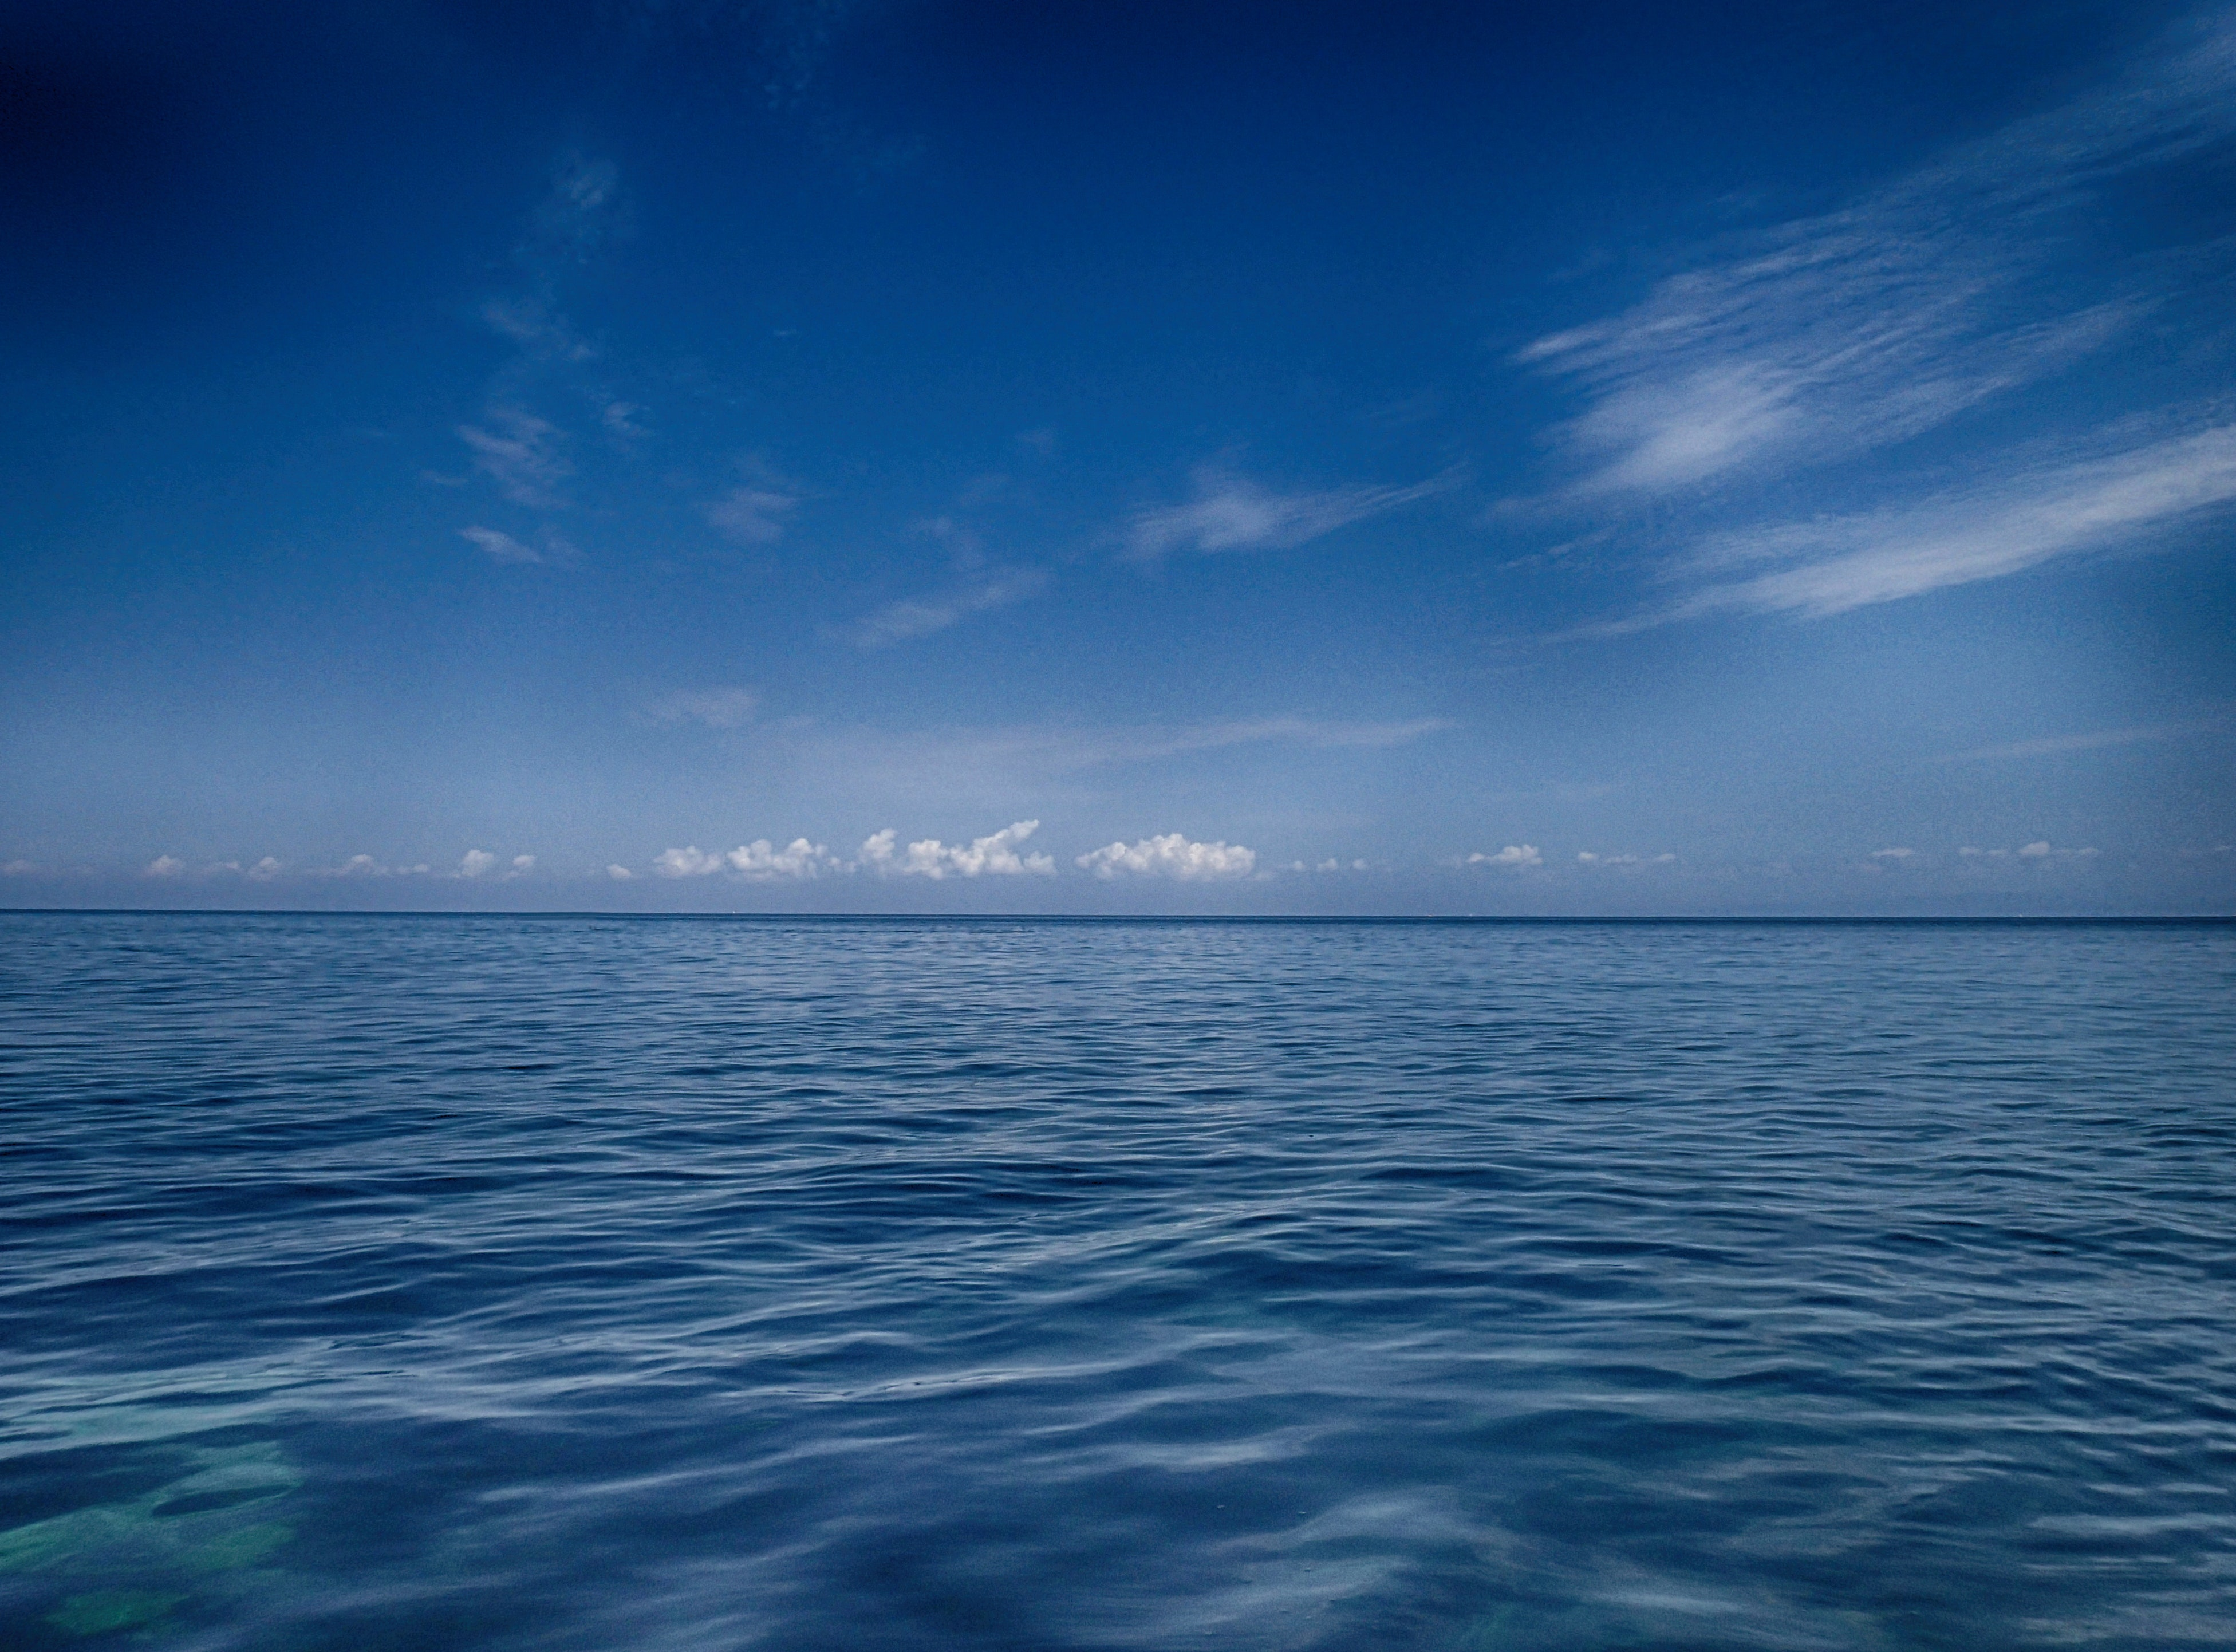 Scenic View of the Sea, Beach, Sea, Water, Vacation, HQ Photo